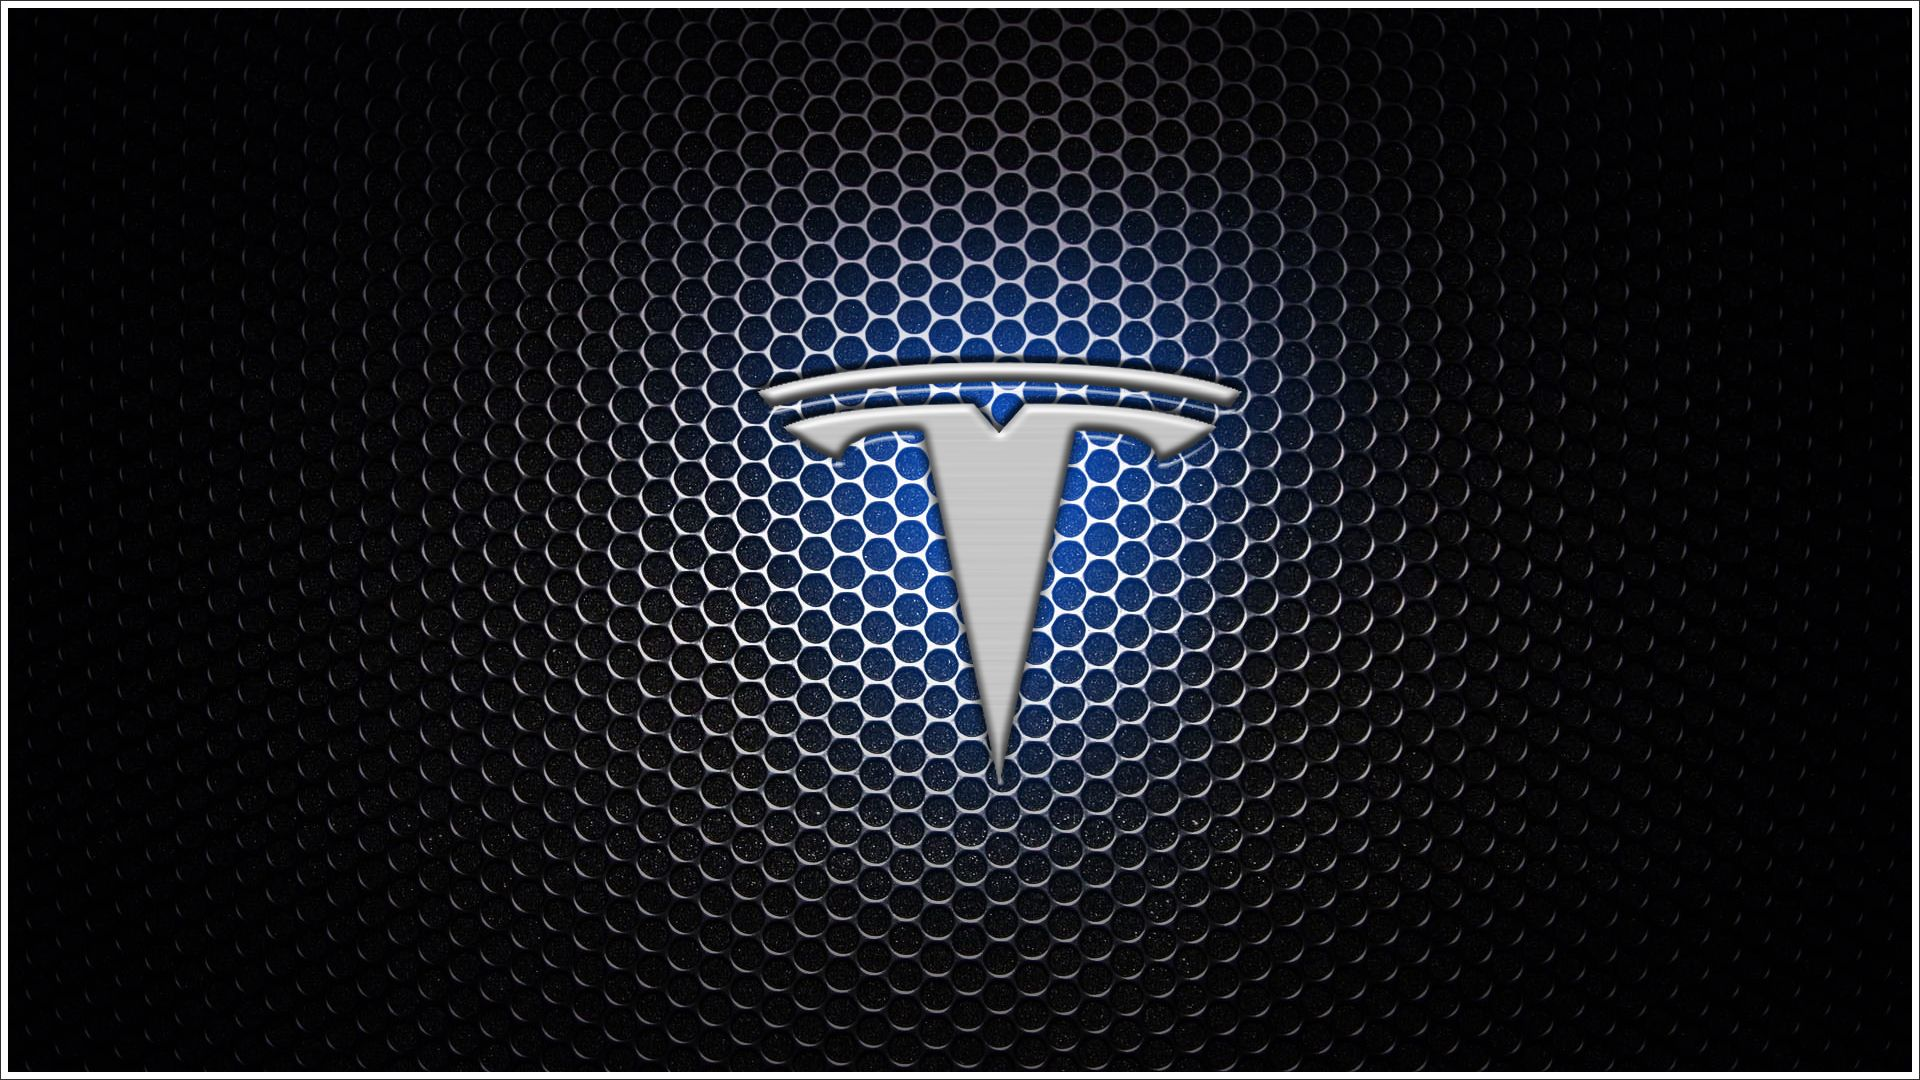 Tesla Logo HD iPhone Wallpapers.